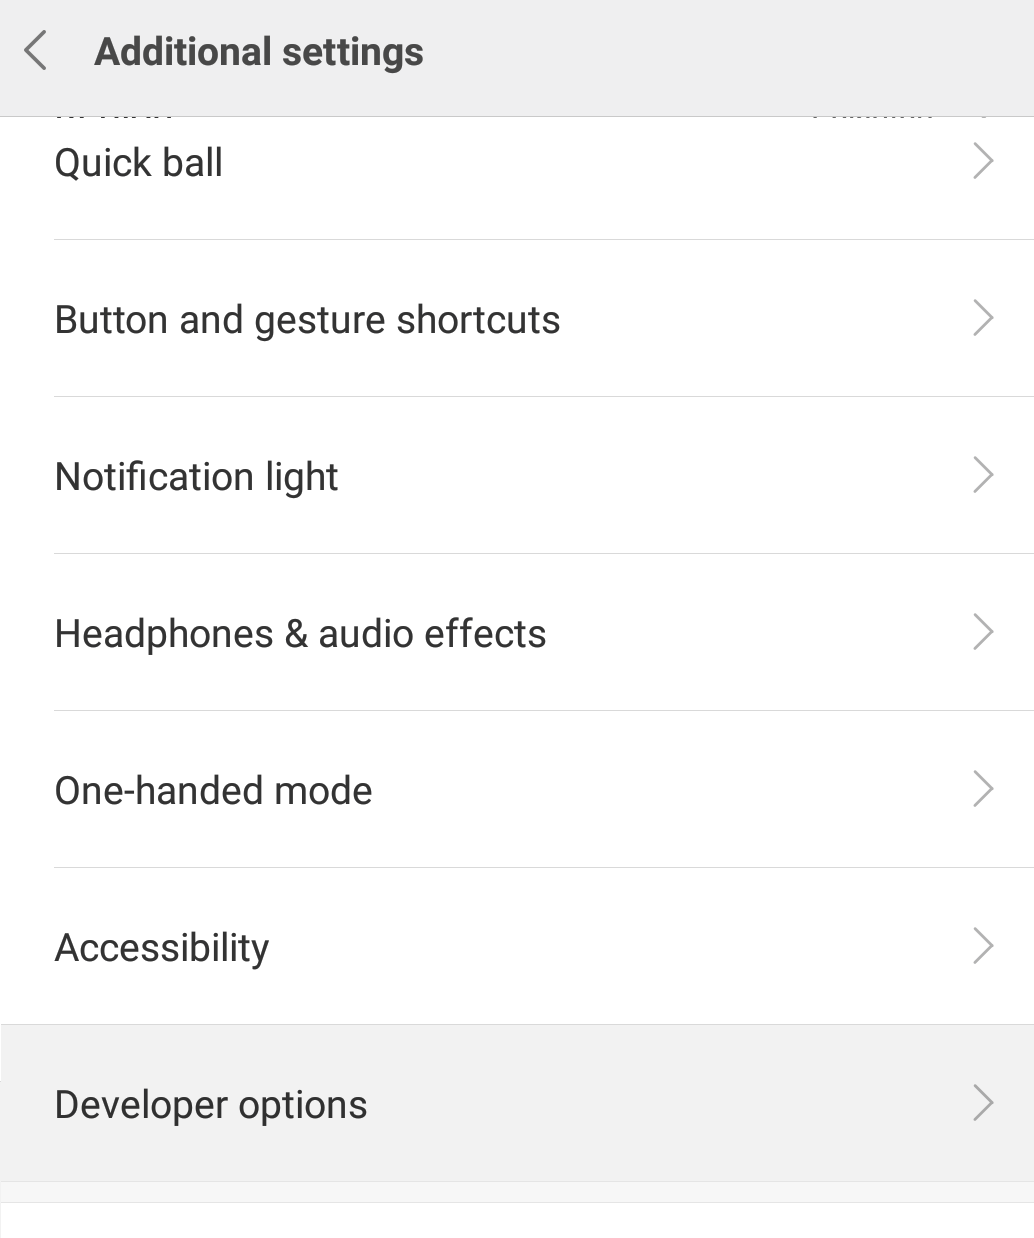 Develop Option in Additional Settings